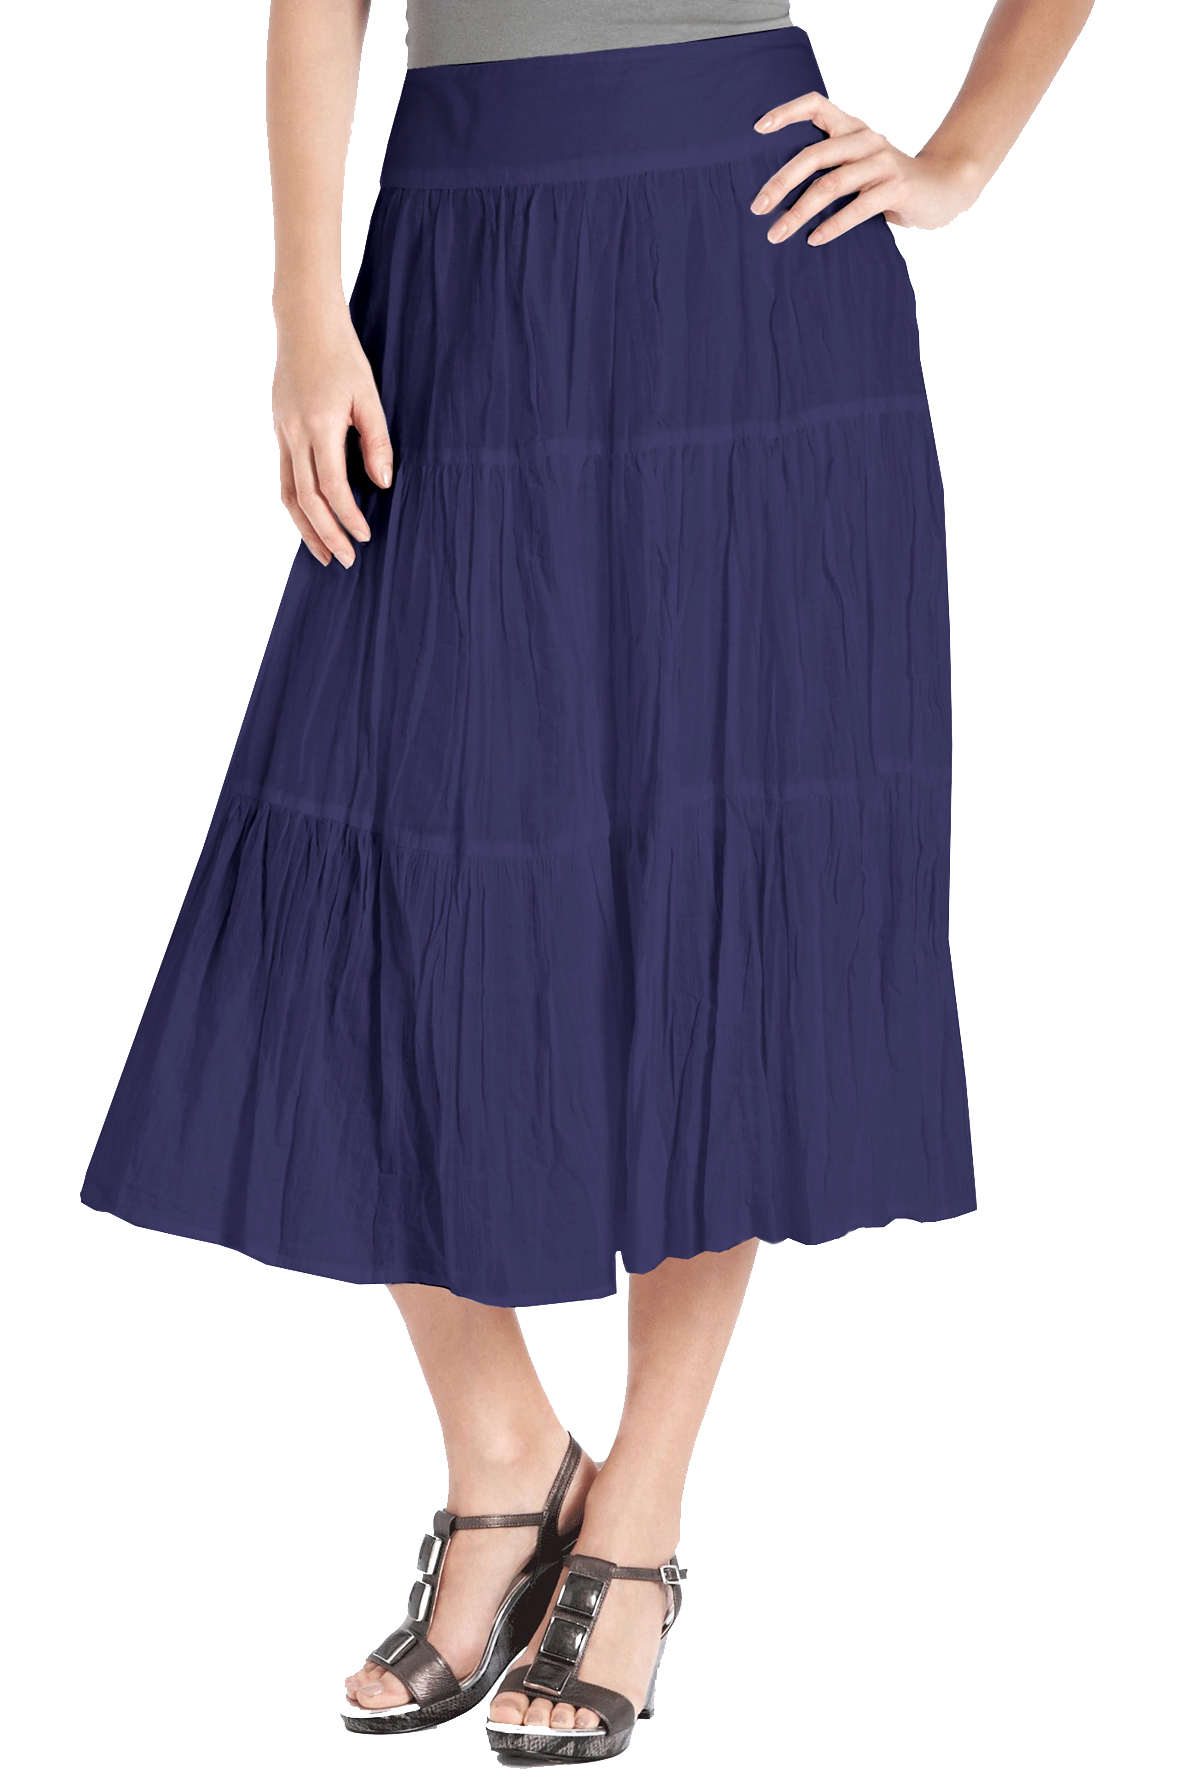 marks and spencer m 5 navy crinkle cotton wide